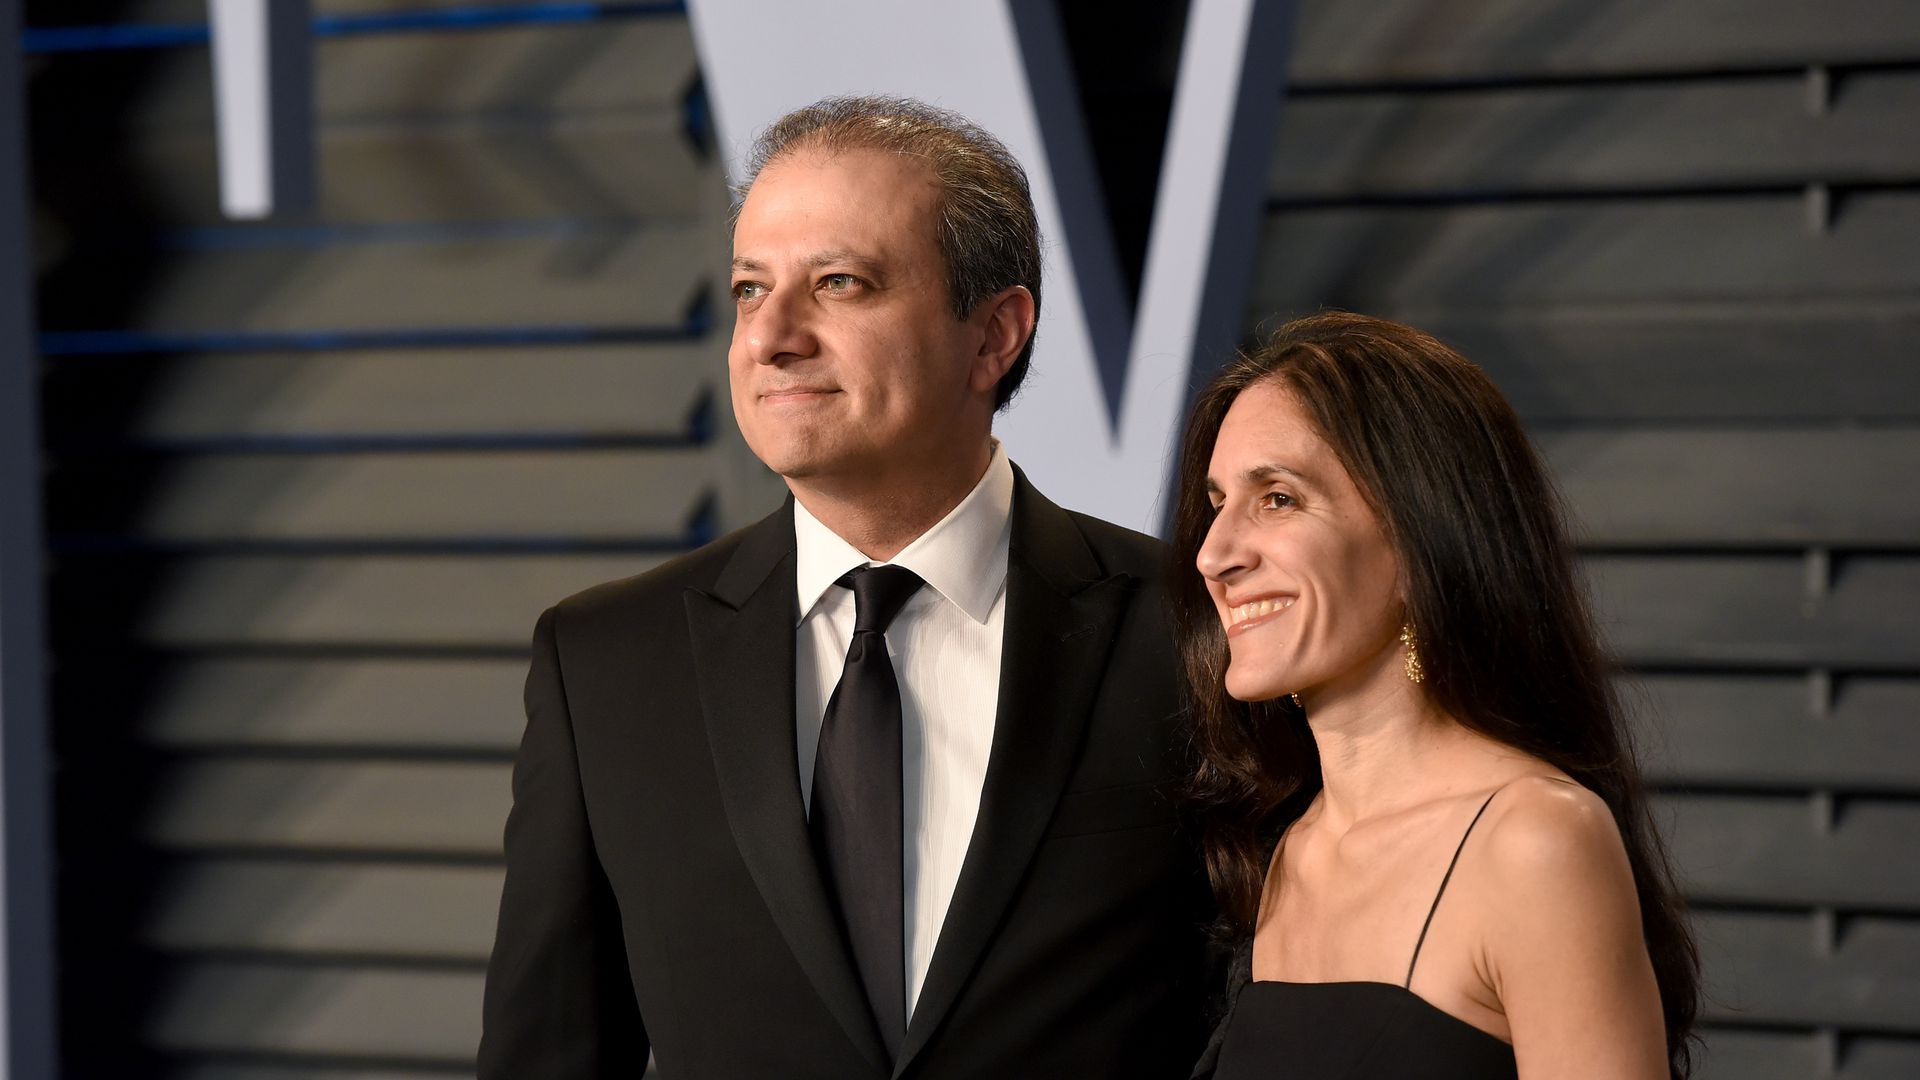 Preet Bharara and his wife Dalya in formal dress